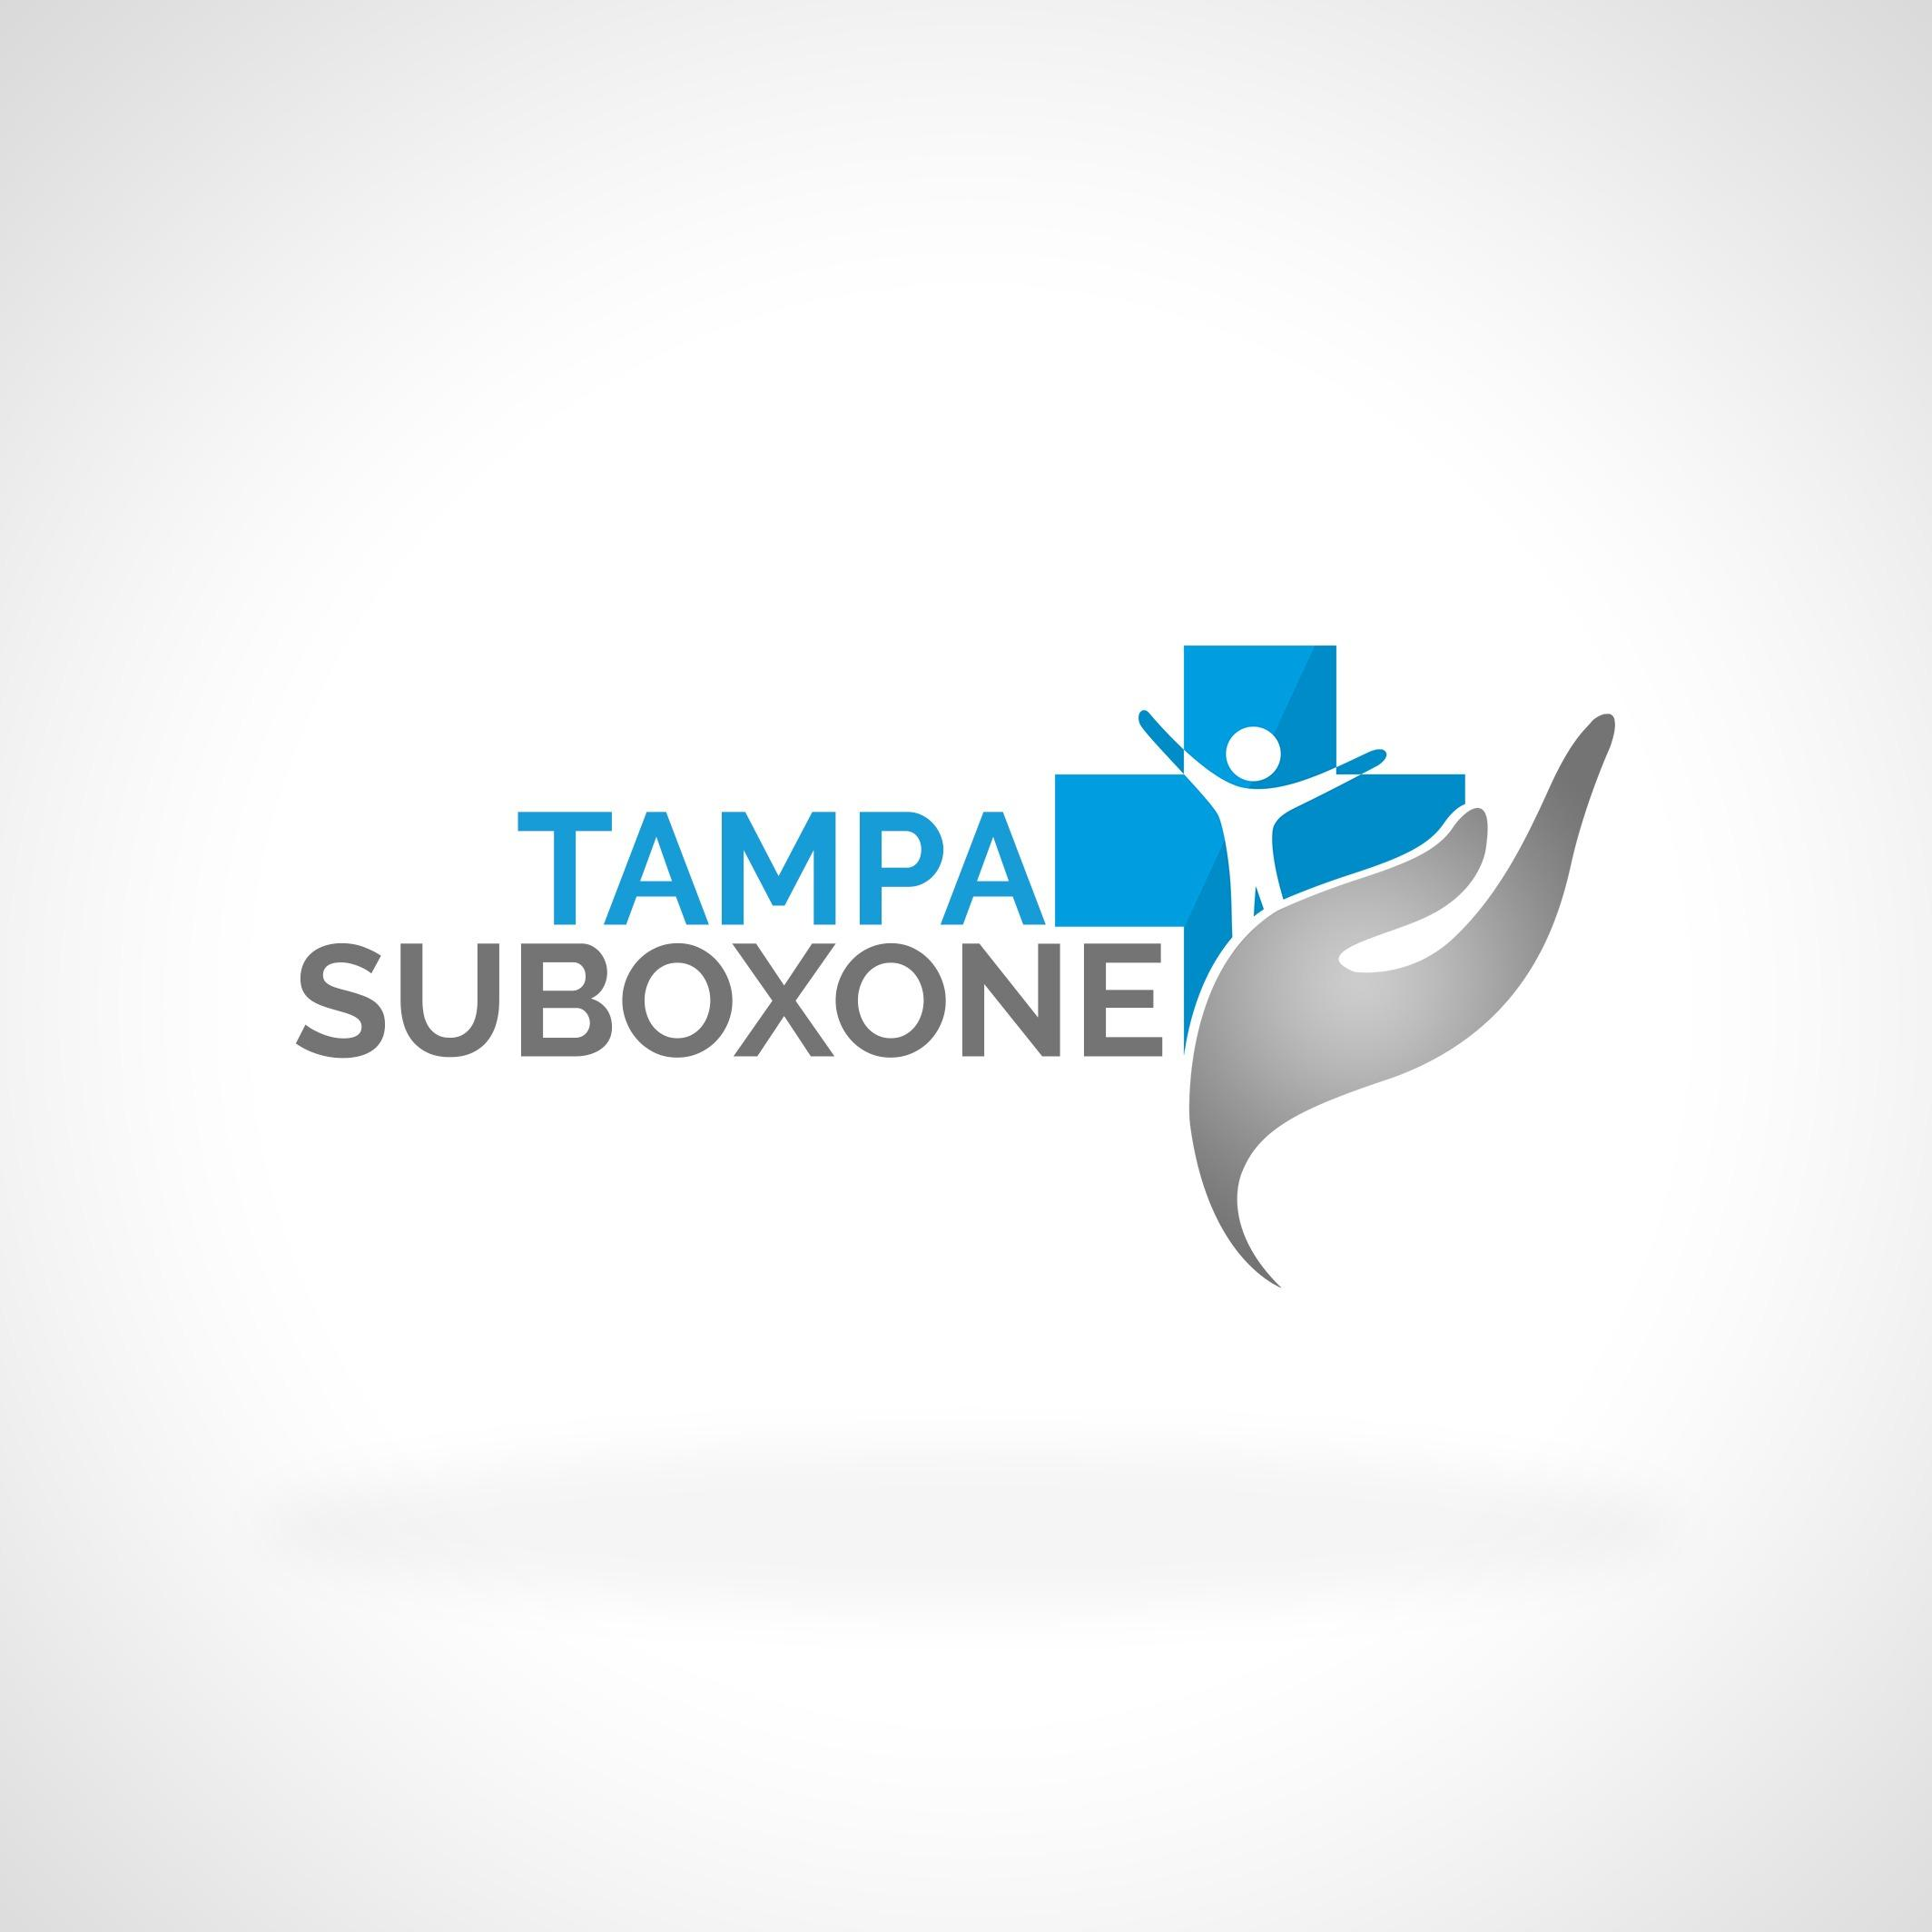 Tampa Suboxone Clinic - Tampa, FL - Mental Health Services